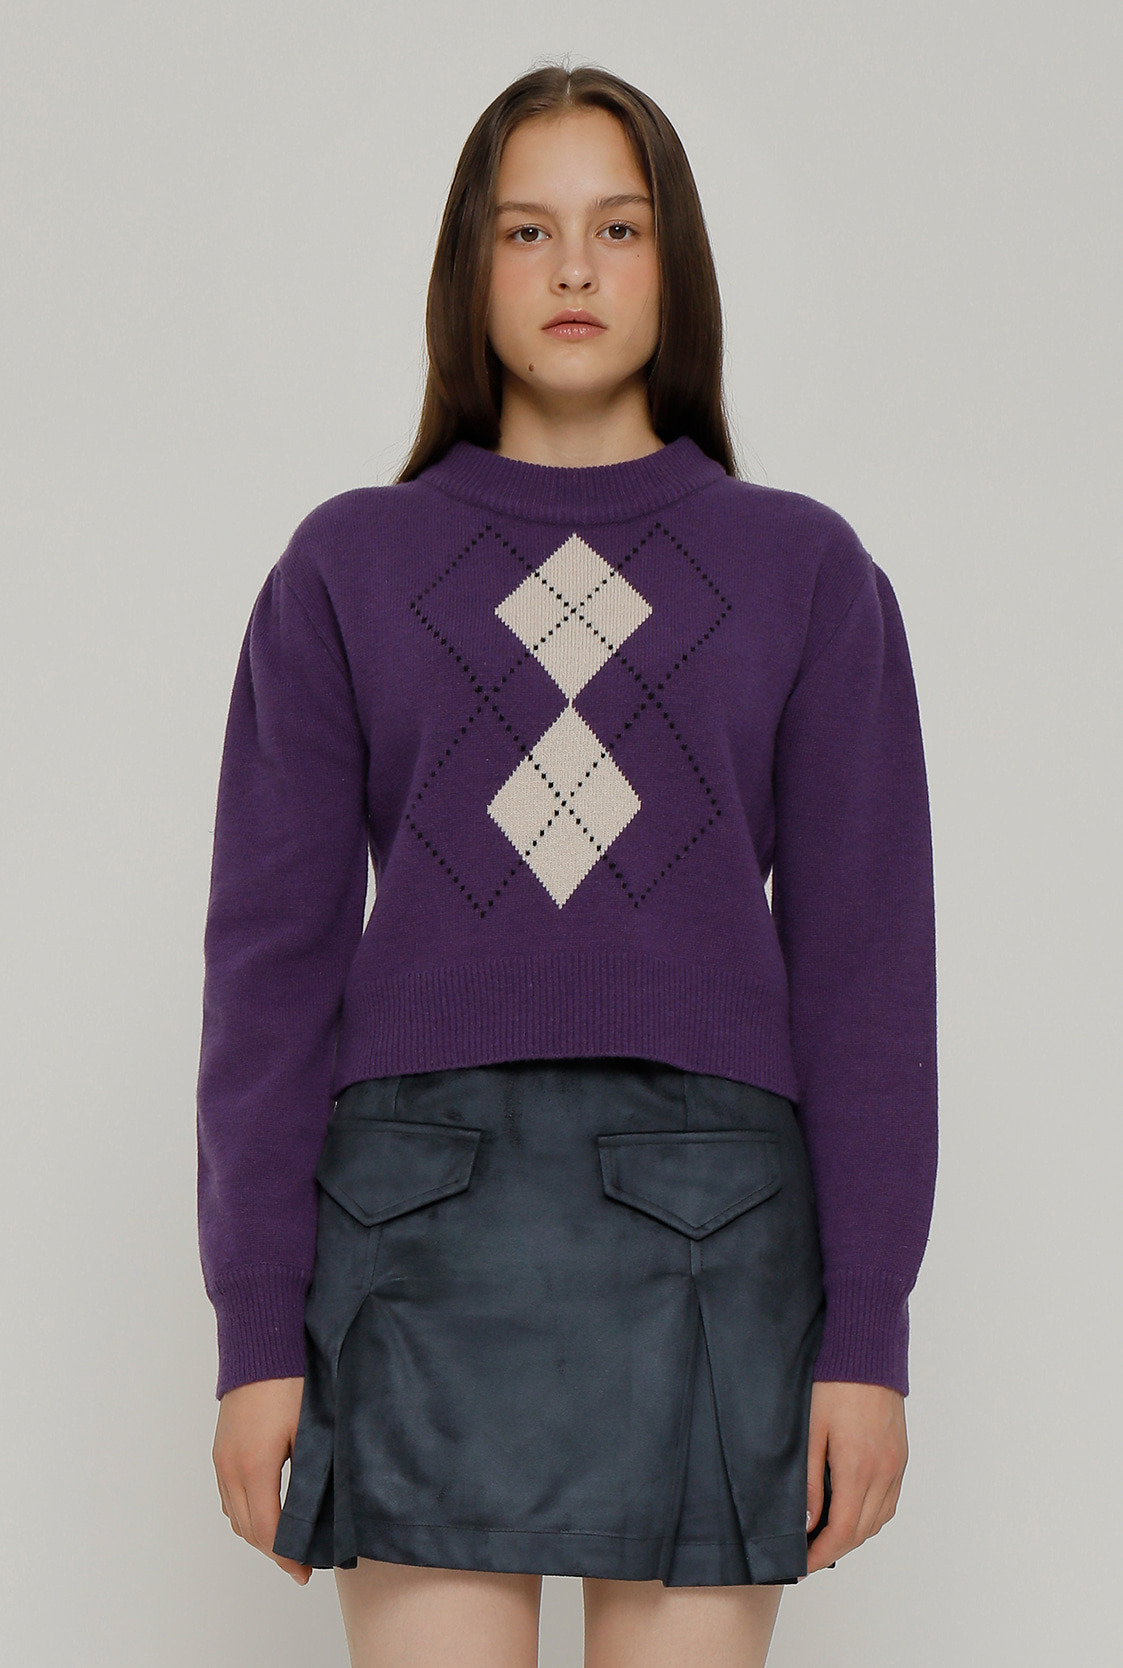 R PUFF SLEEVE ARGYLE KNIT TOP_PURPLE